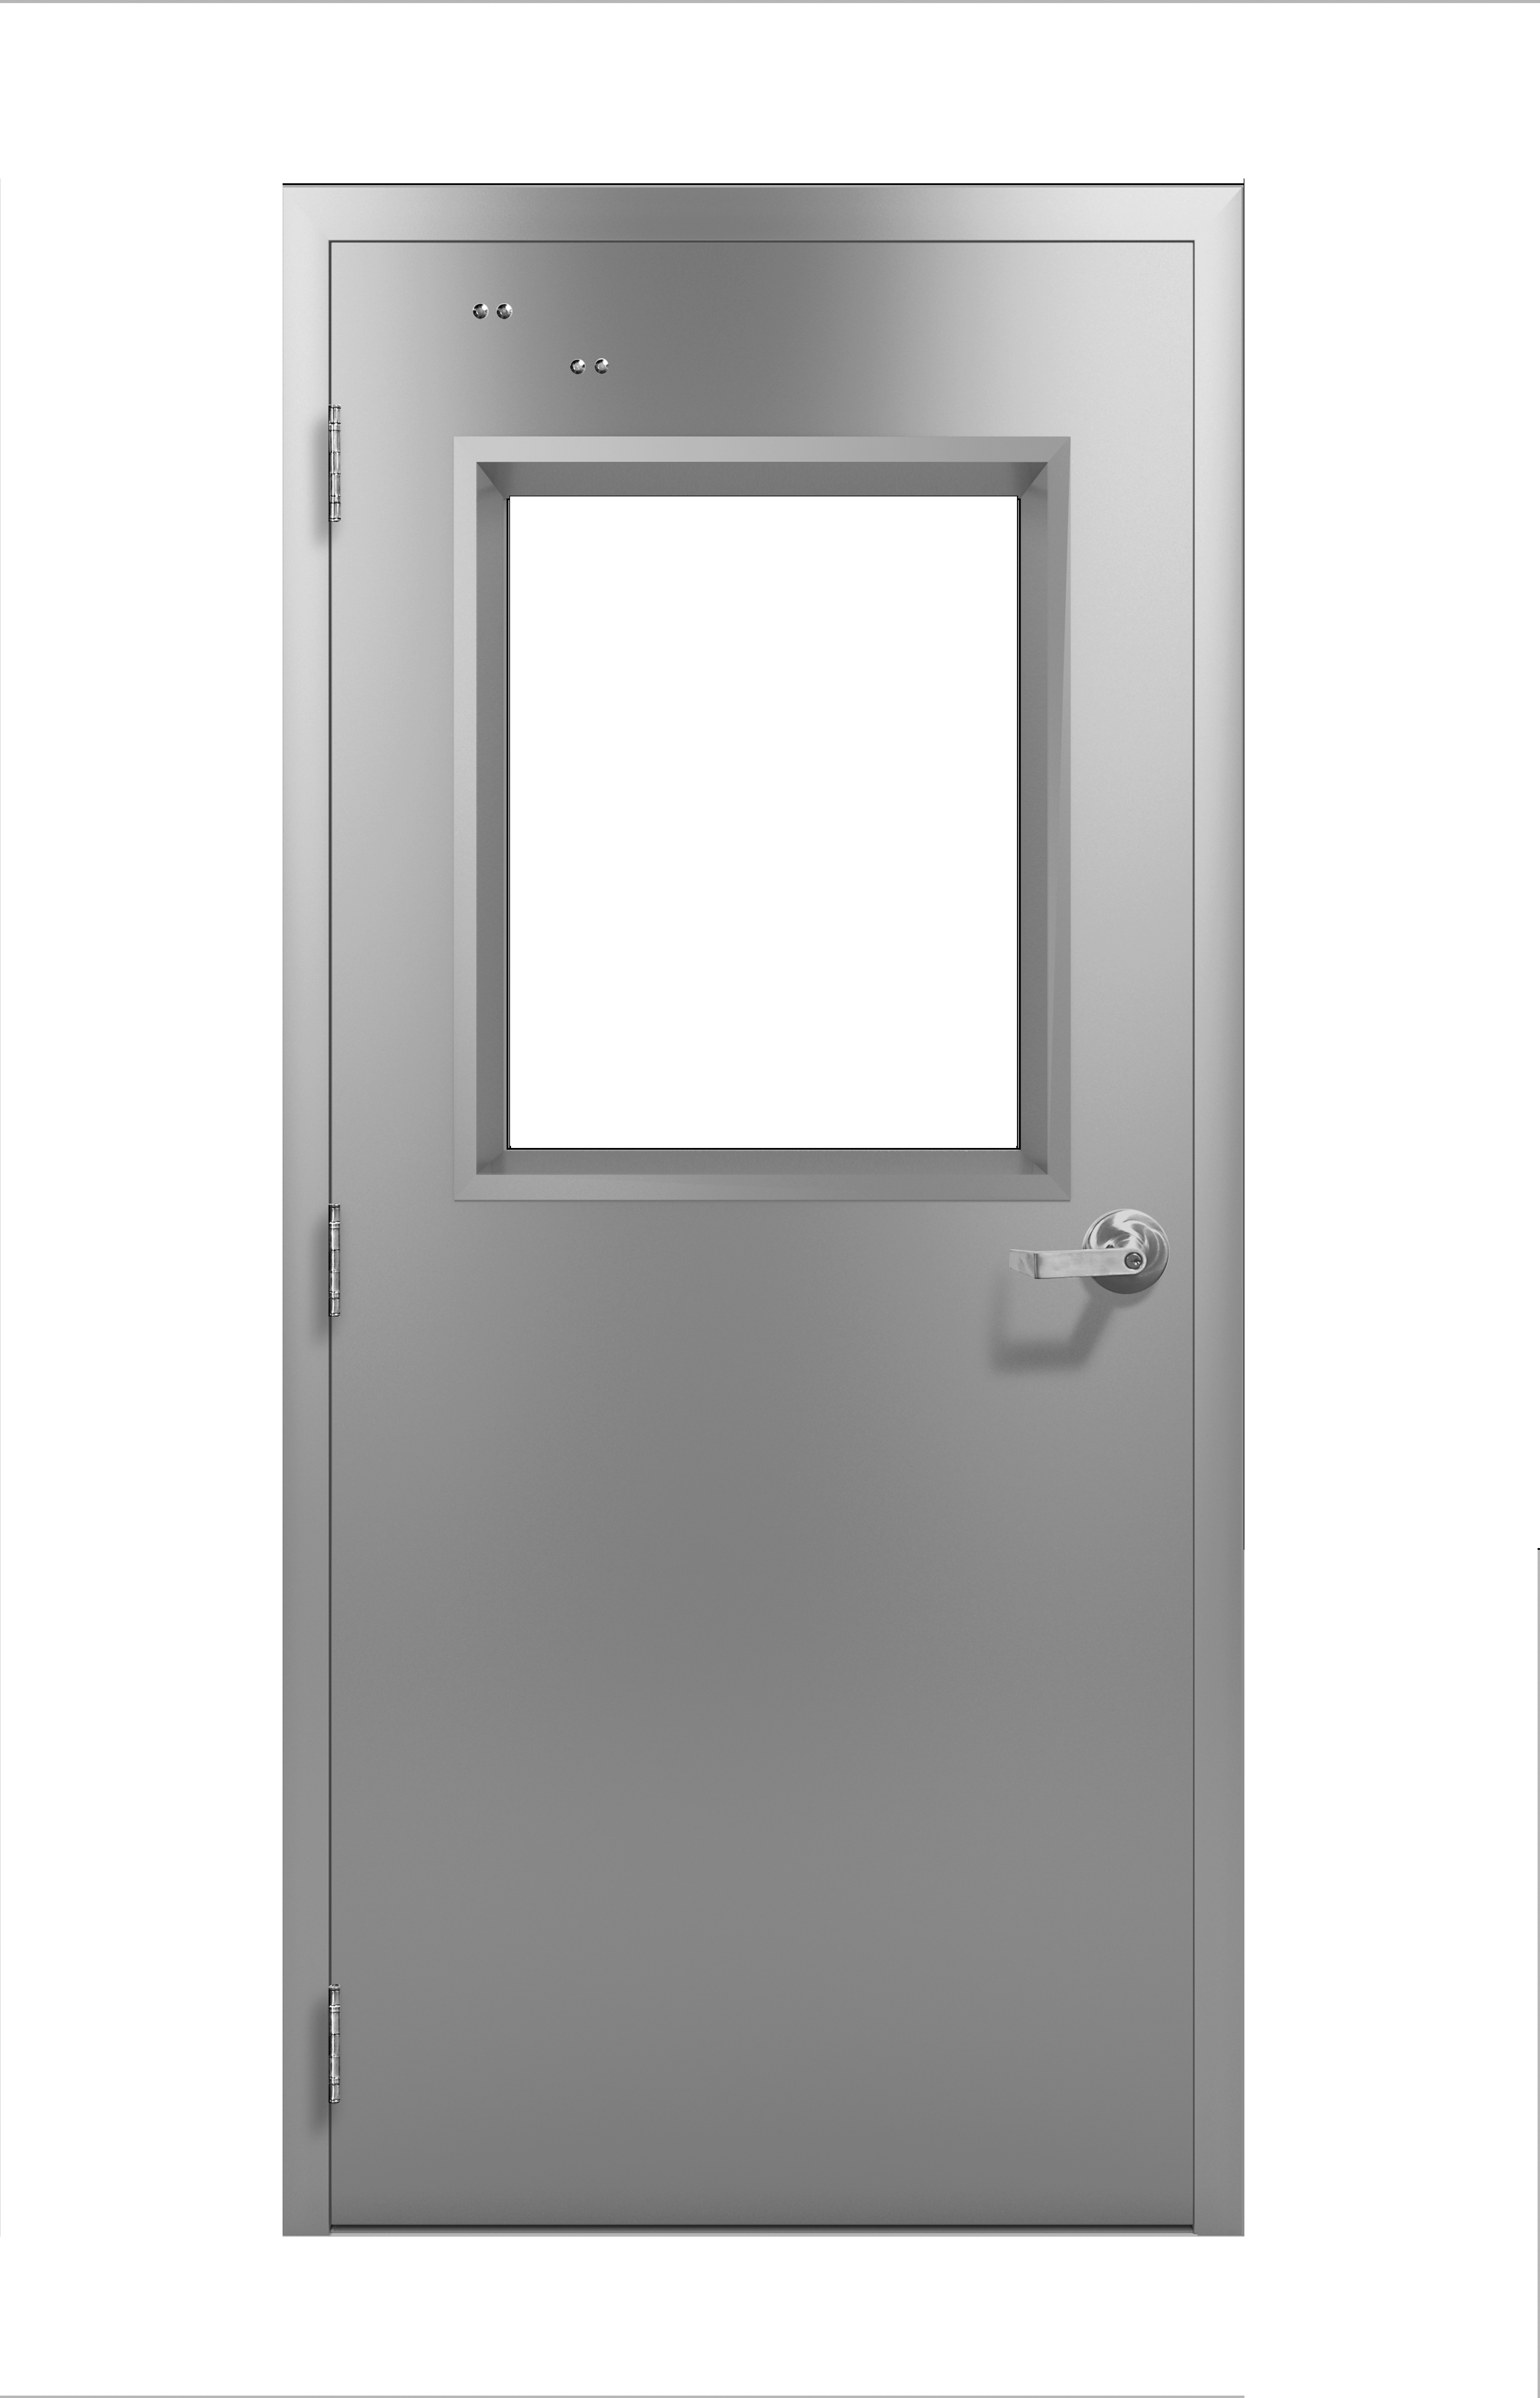 Jamoclean Stainless Steel Architectural Style 1 3 4 Swing Door